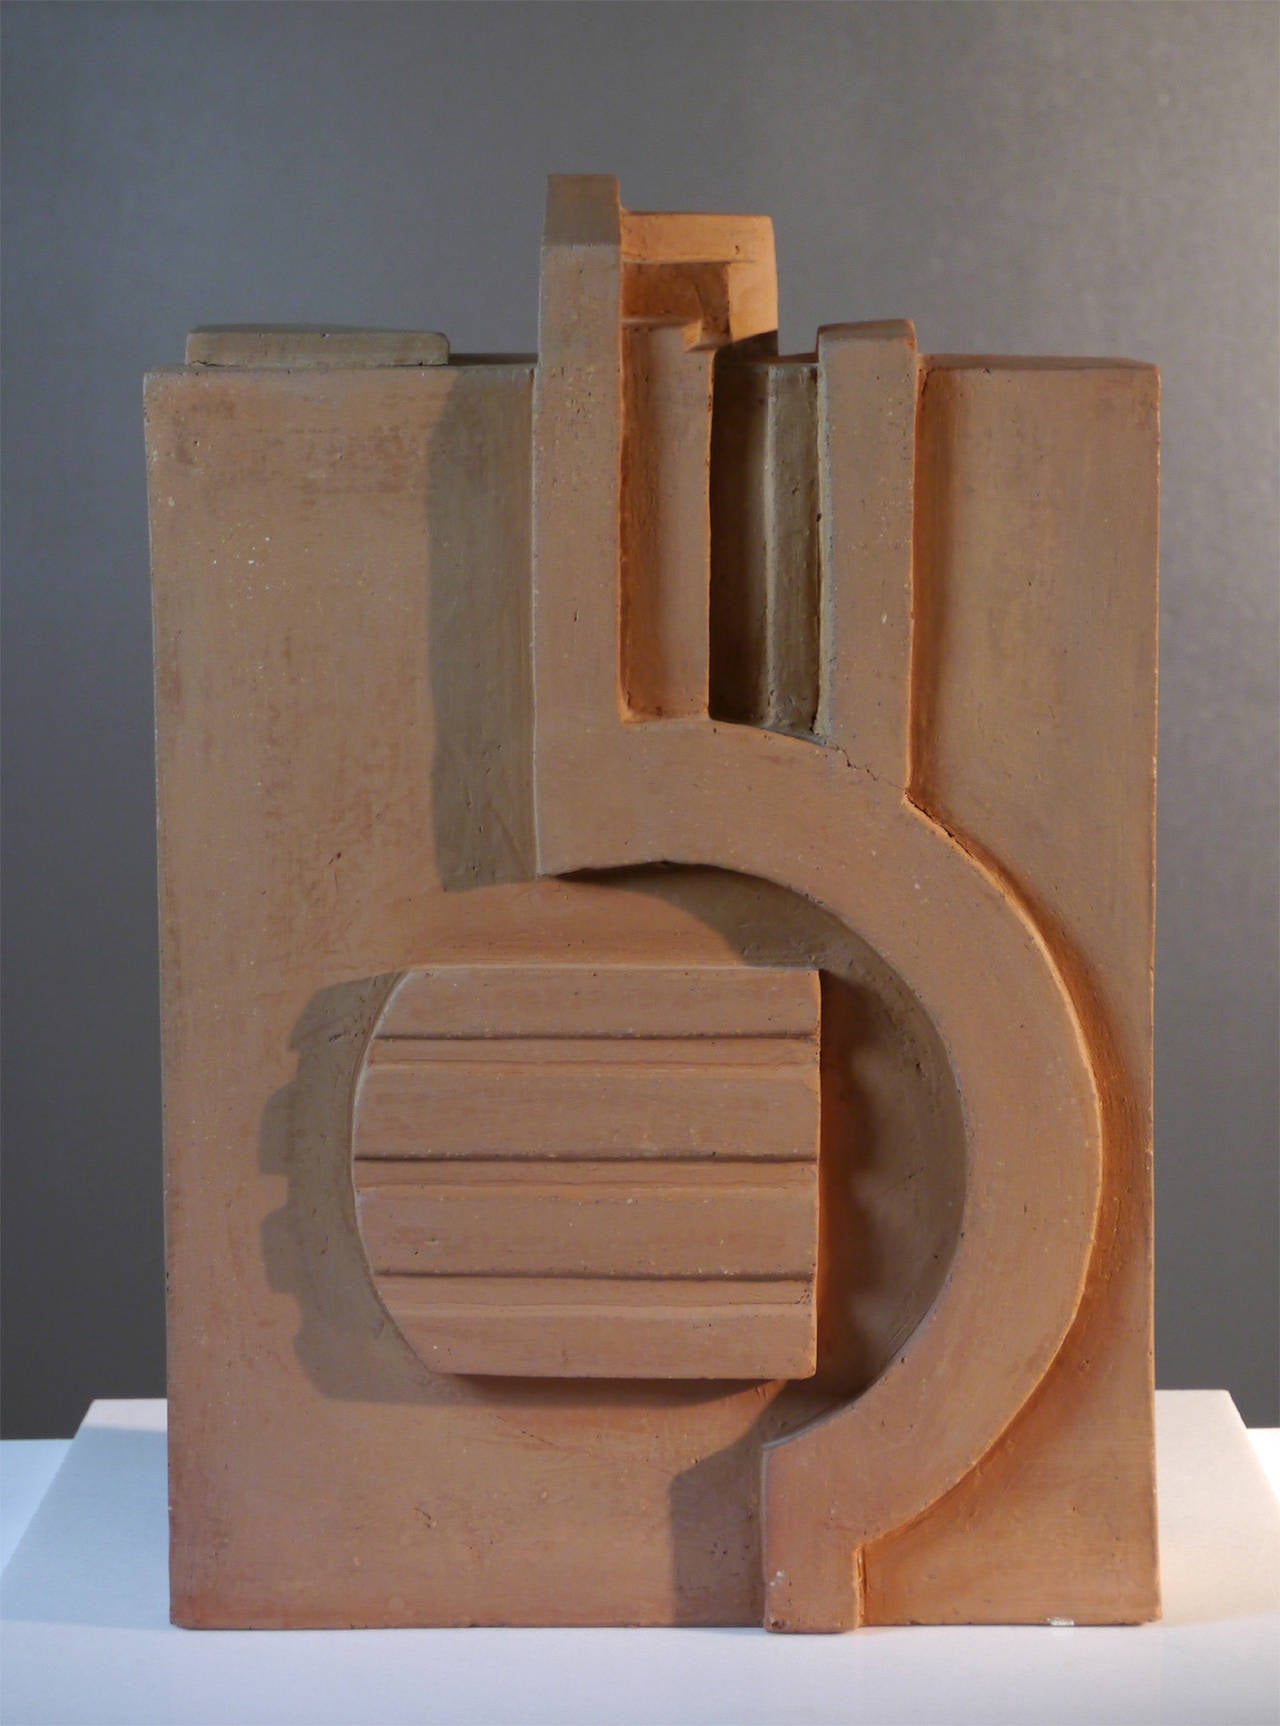 Ceramic Ocher Earth Sculpture by Jacques Barbier, 1990 For Sale